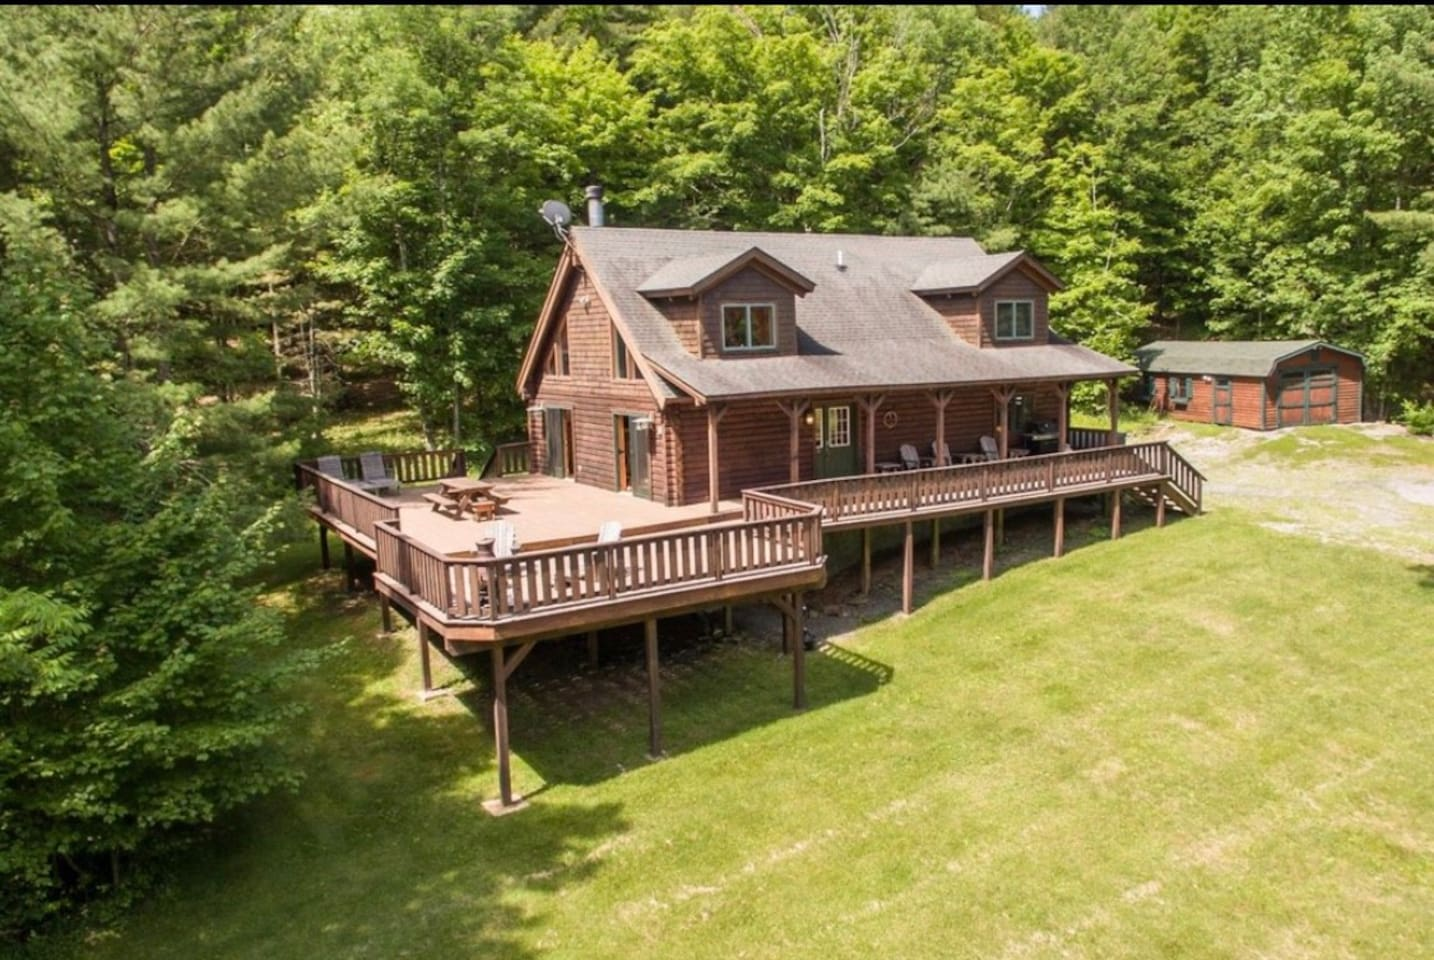 The Country Cabin is a traditional log cabin, featuring 2,800 sq ft of indoor living space, an 1,100 sq ft deck and expansive, manicured yard on seven acres